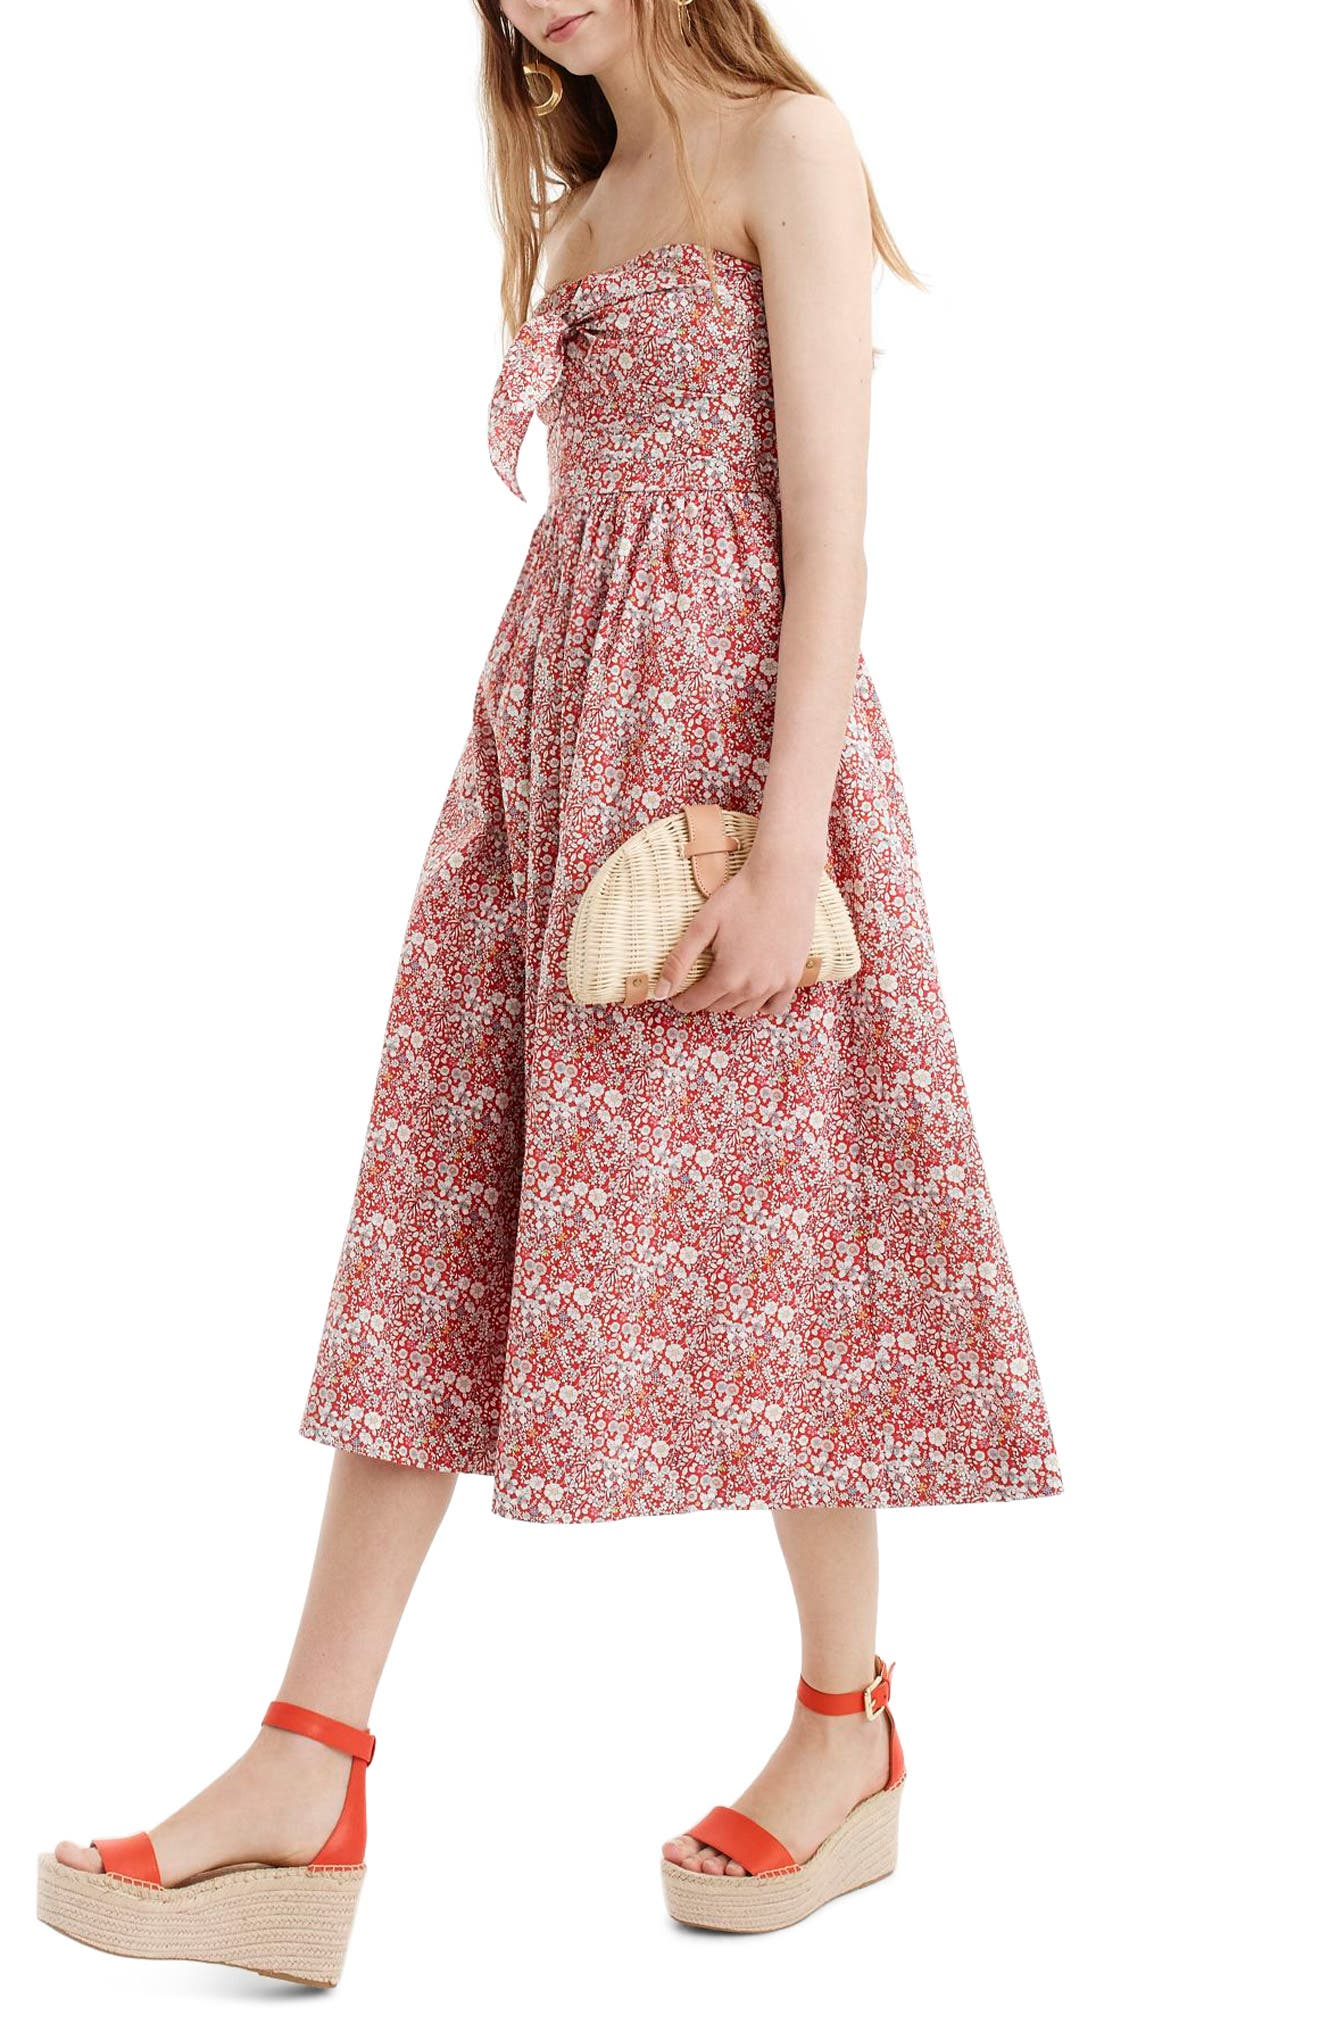 Liberty Tie Front Strapless Dress,                             Main thumbnail 1, color,                             Cherry Multi